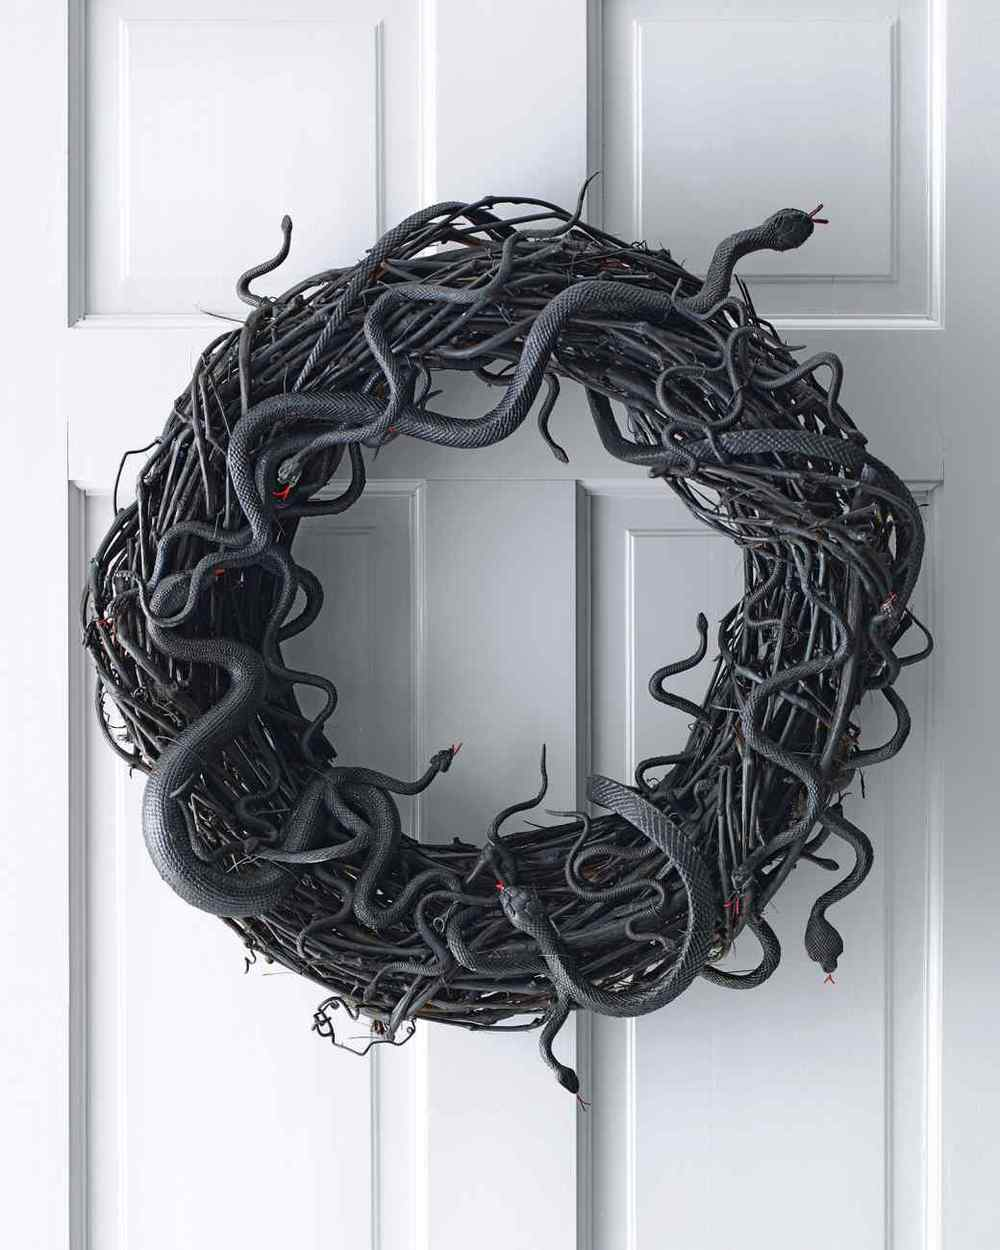 Wriggling Snake Wreath from  Martha Stewart  - I am so doing this next year!